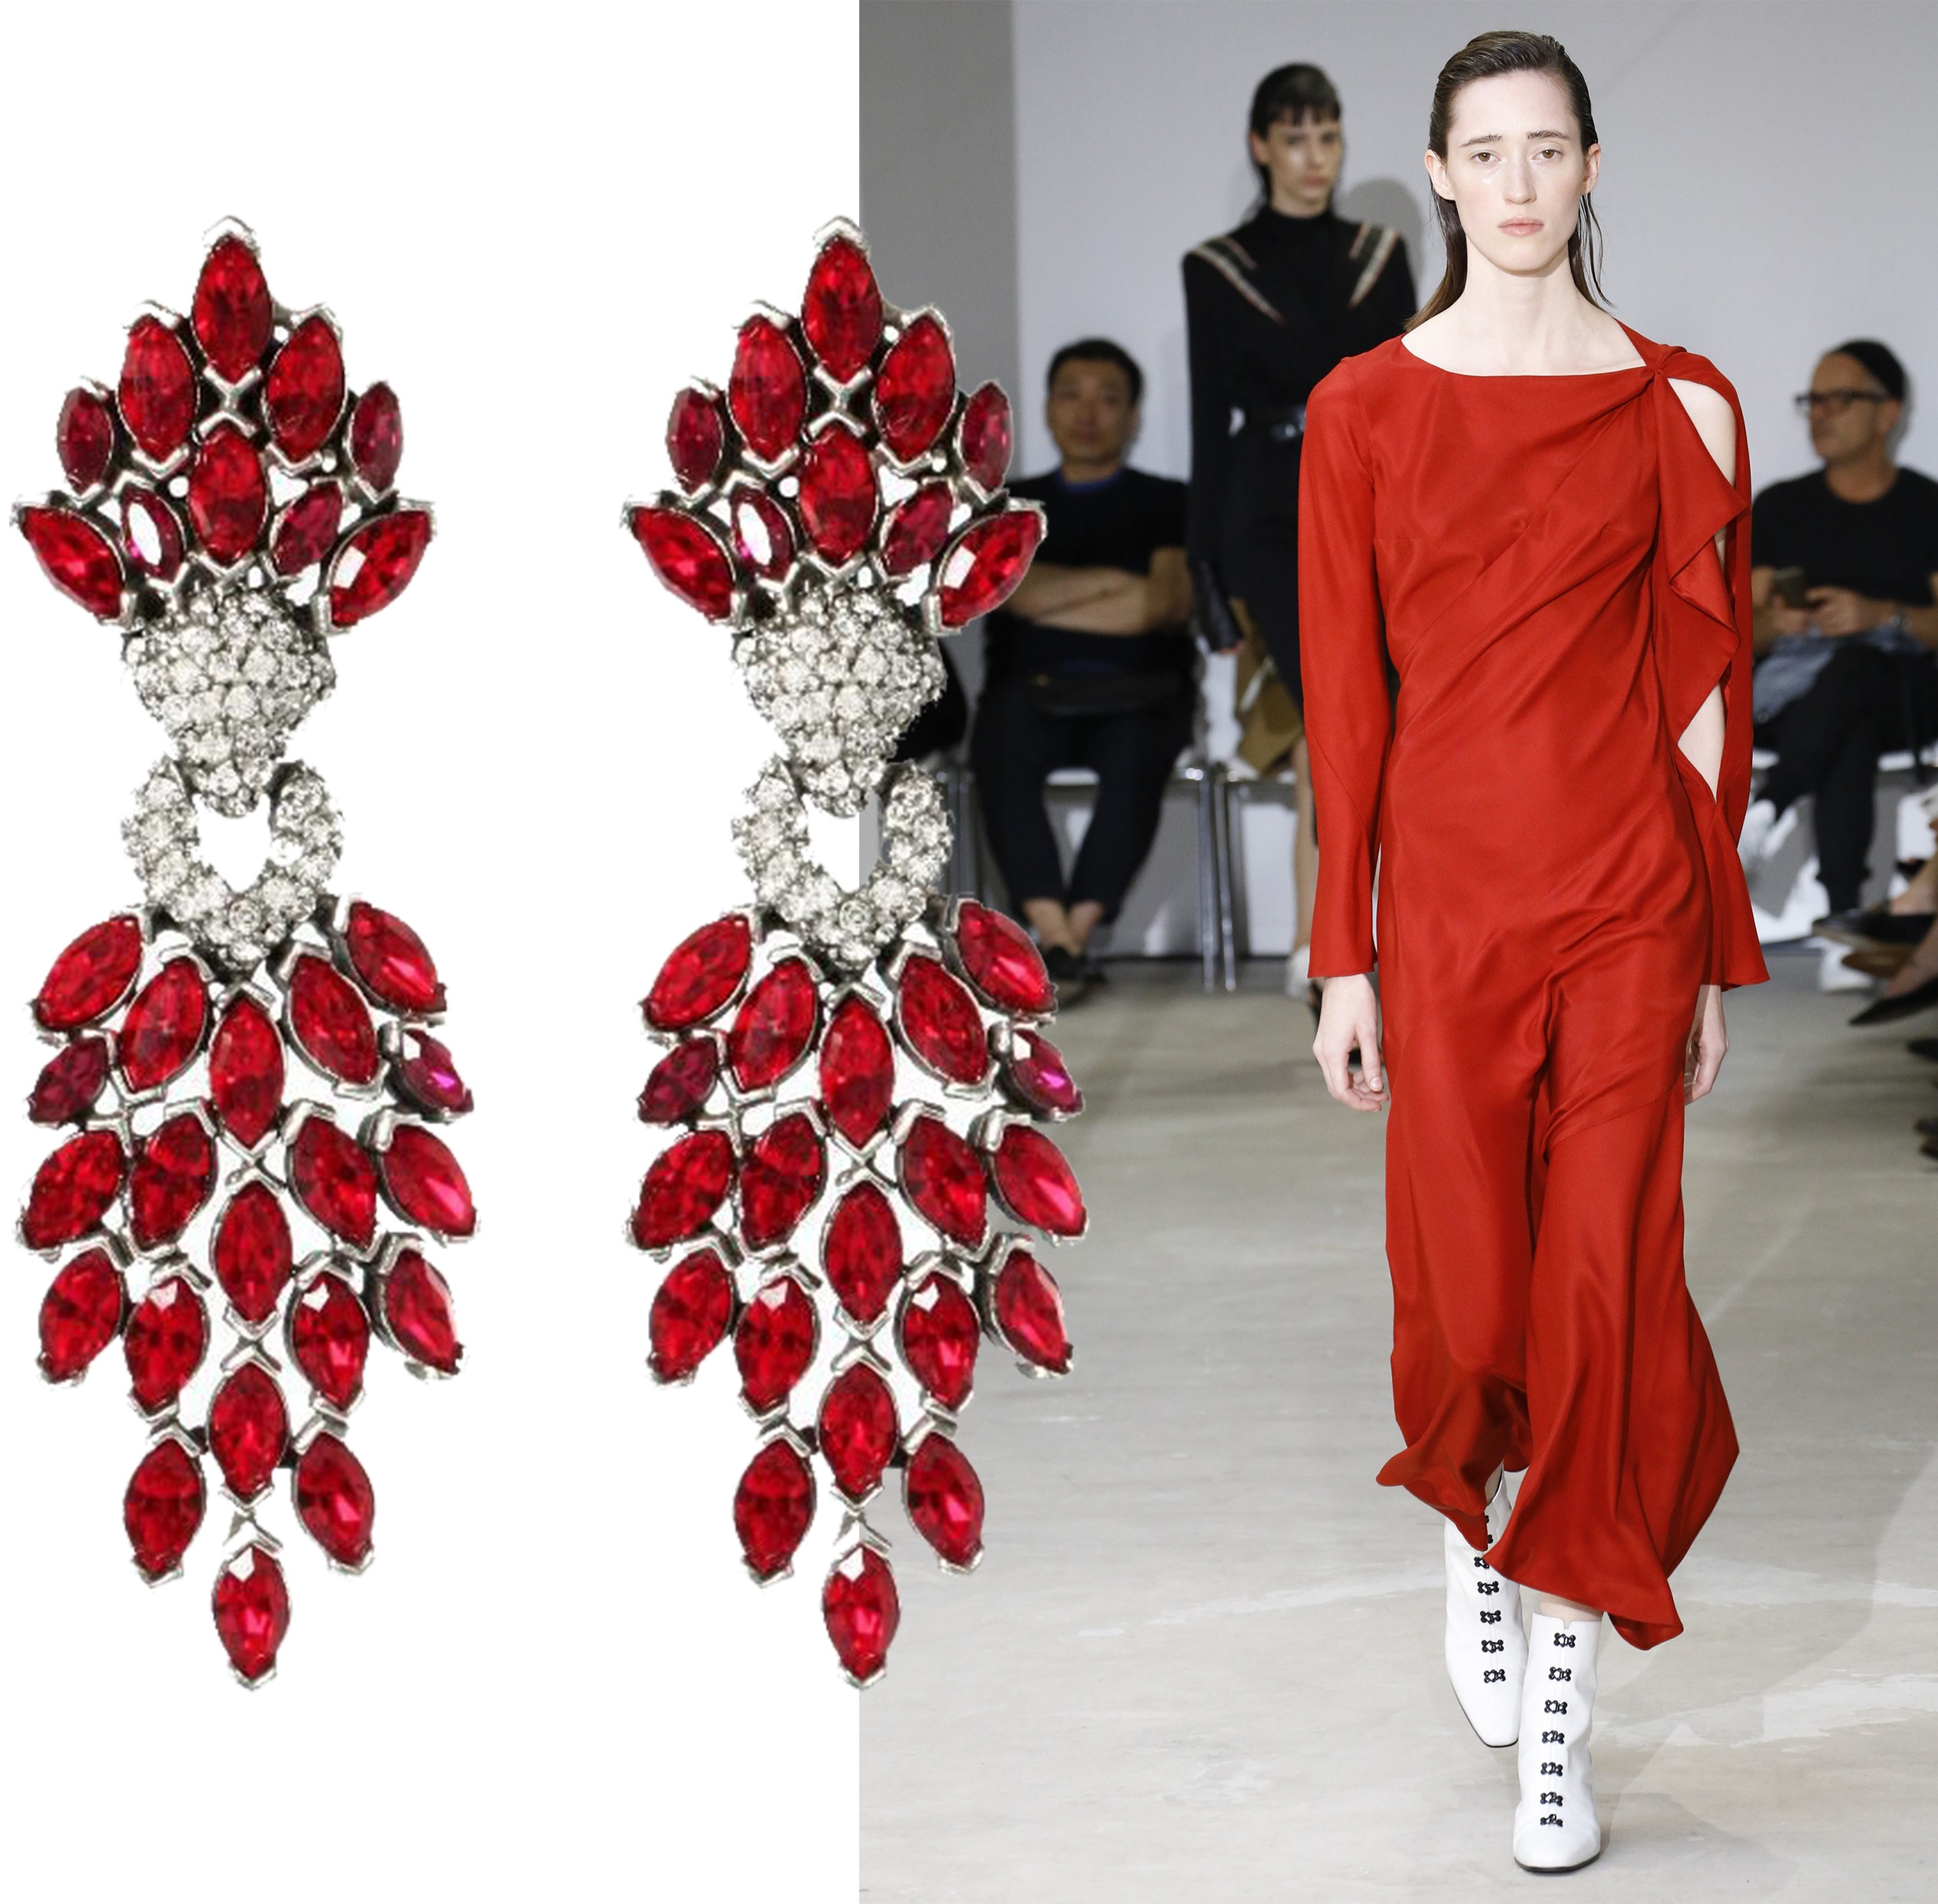 Get The Look: Ruby Red